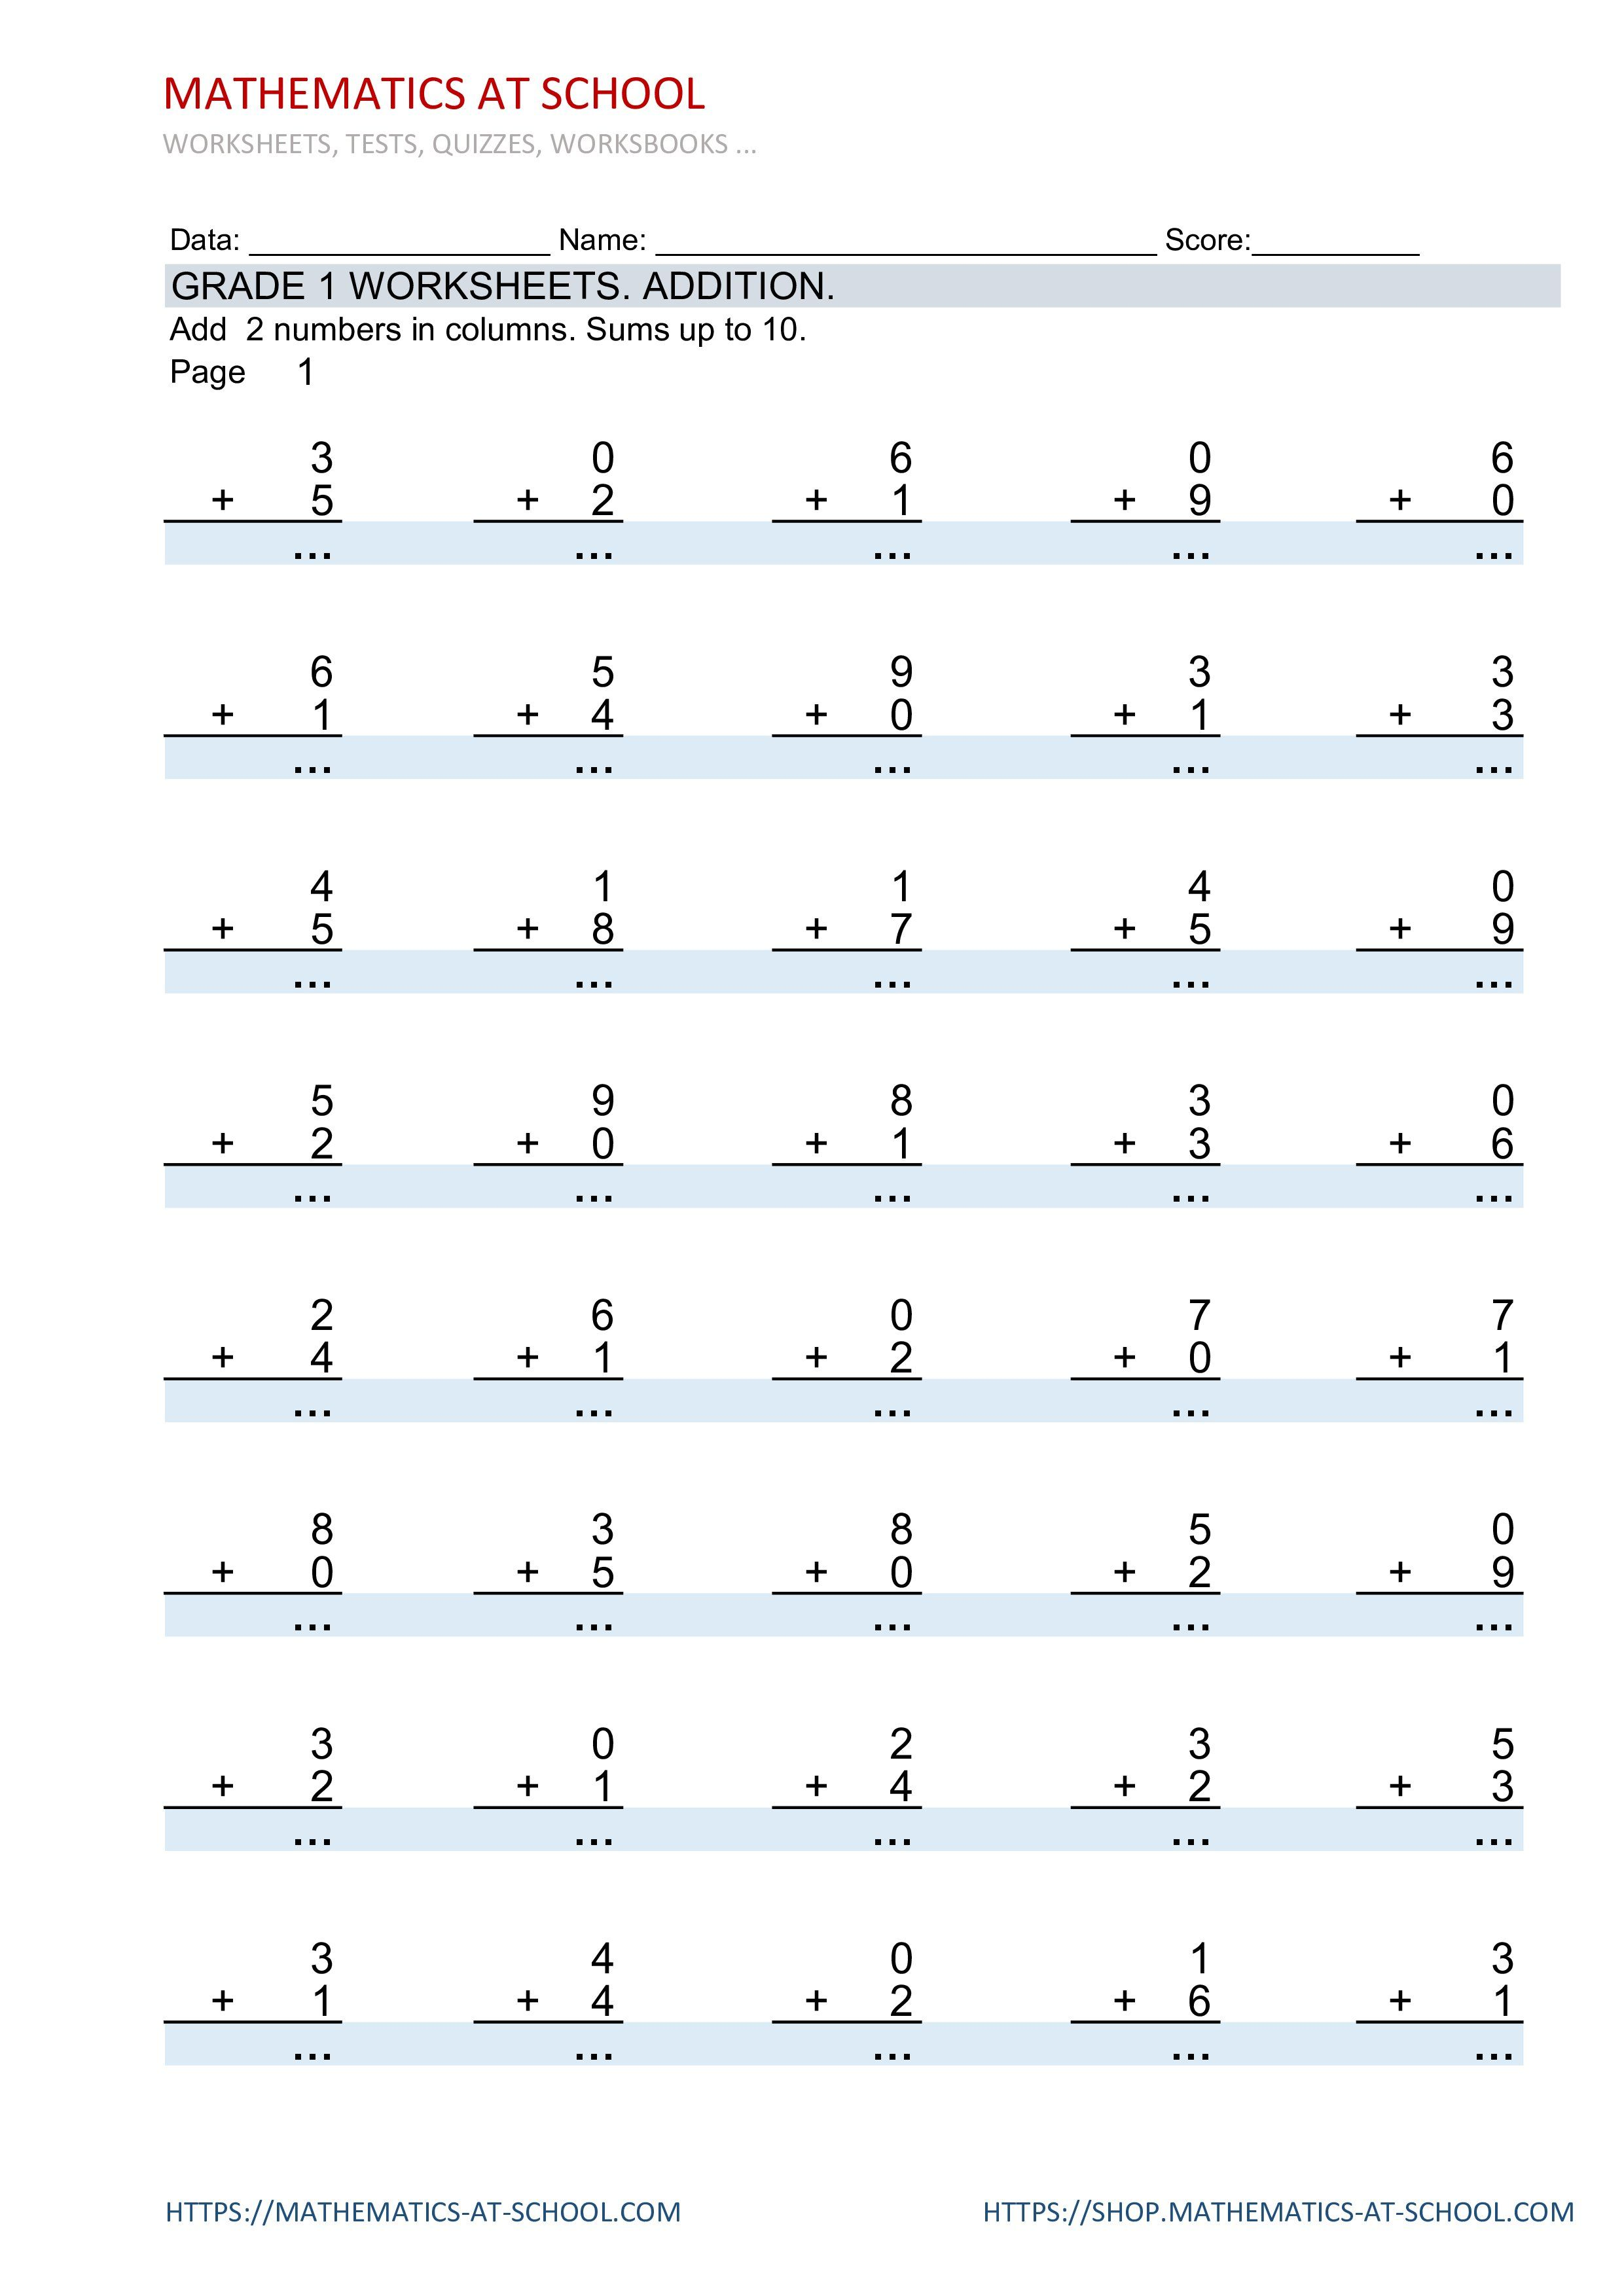 Grate 1 Worksheets Addition In Columns Add Two Numbers In